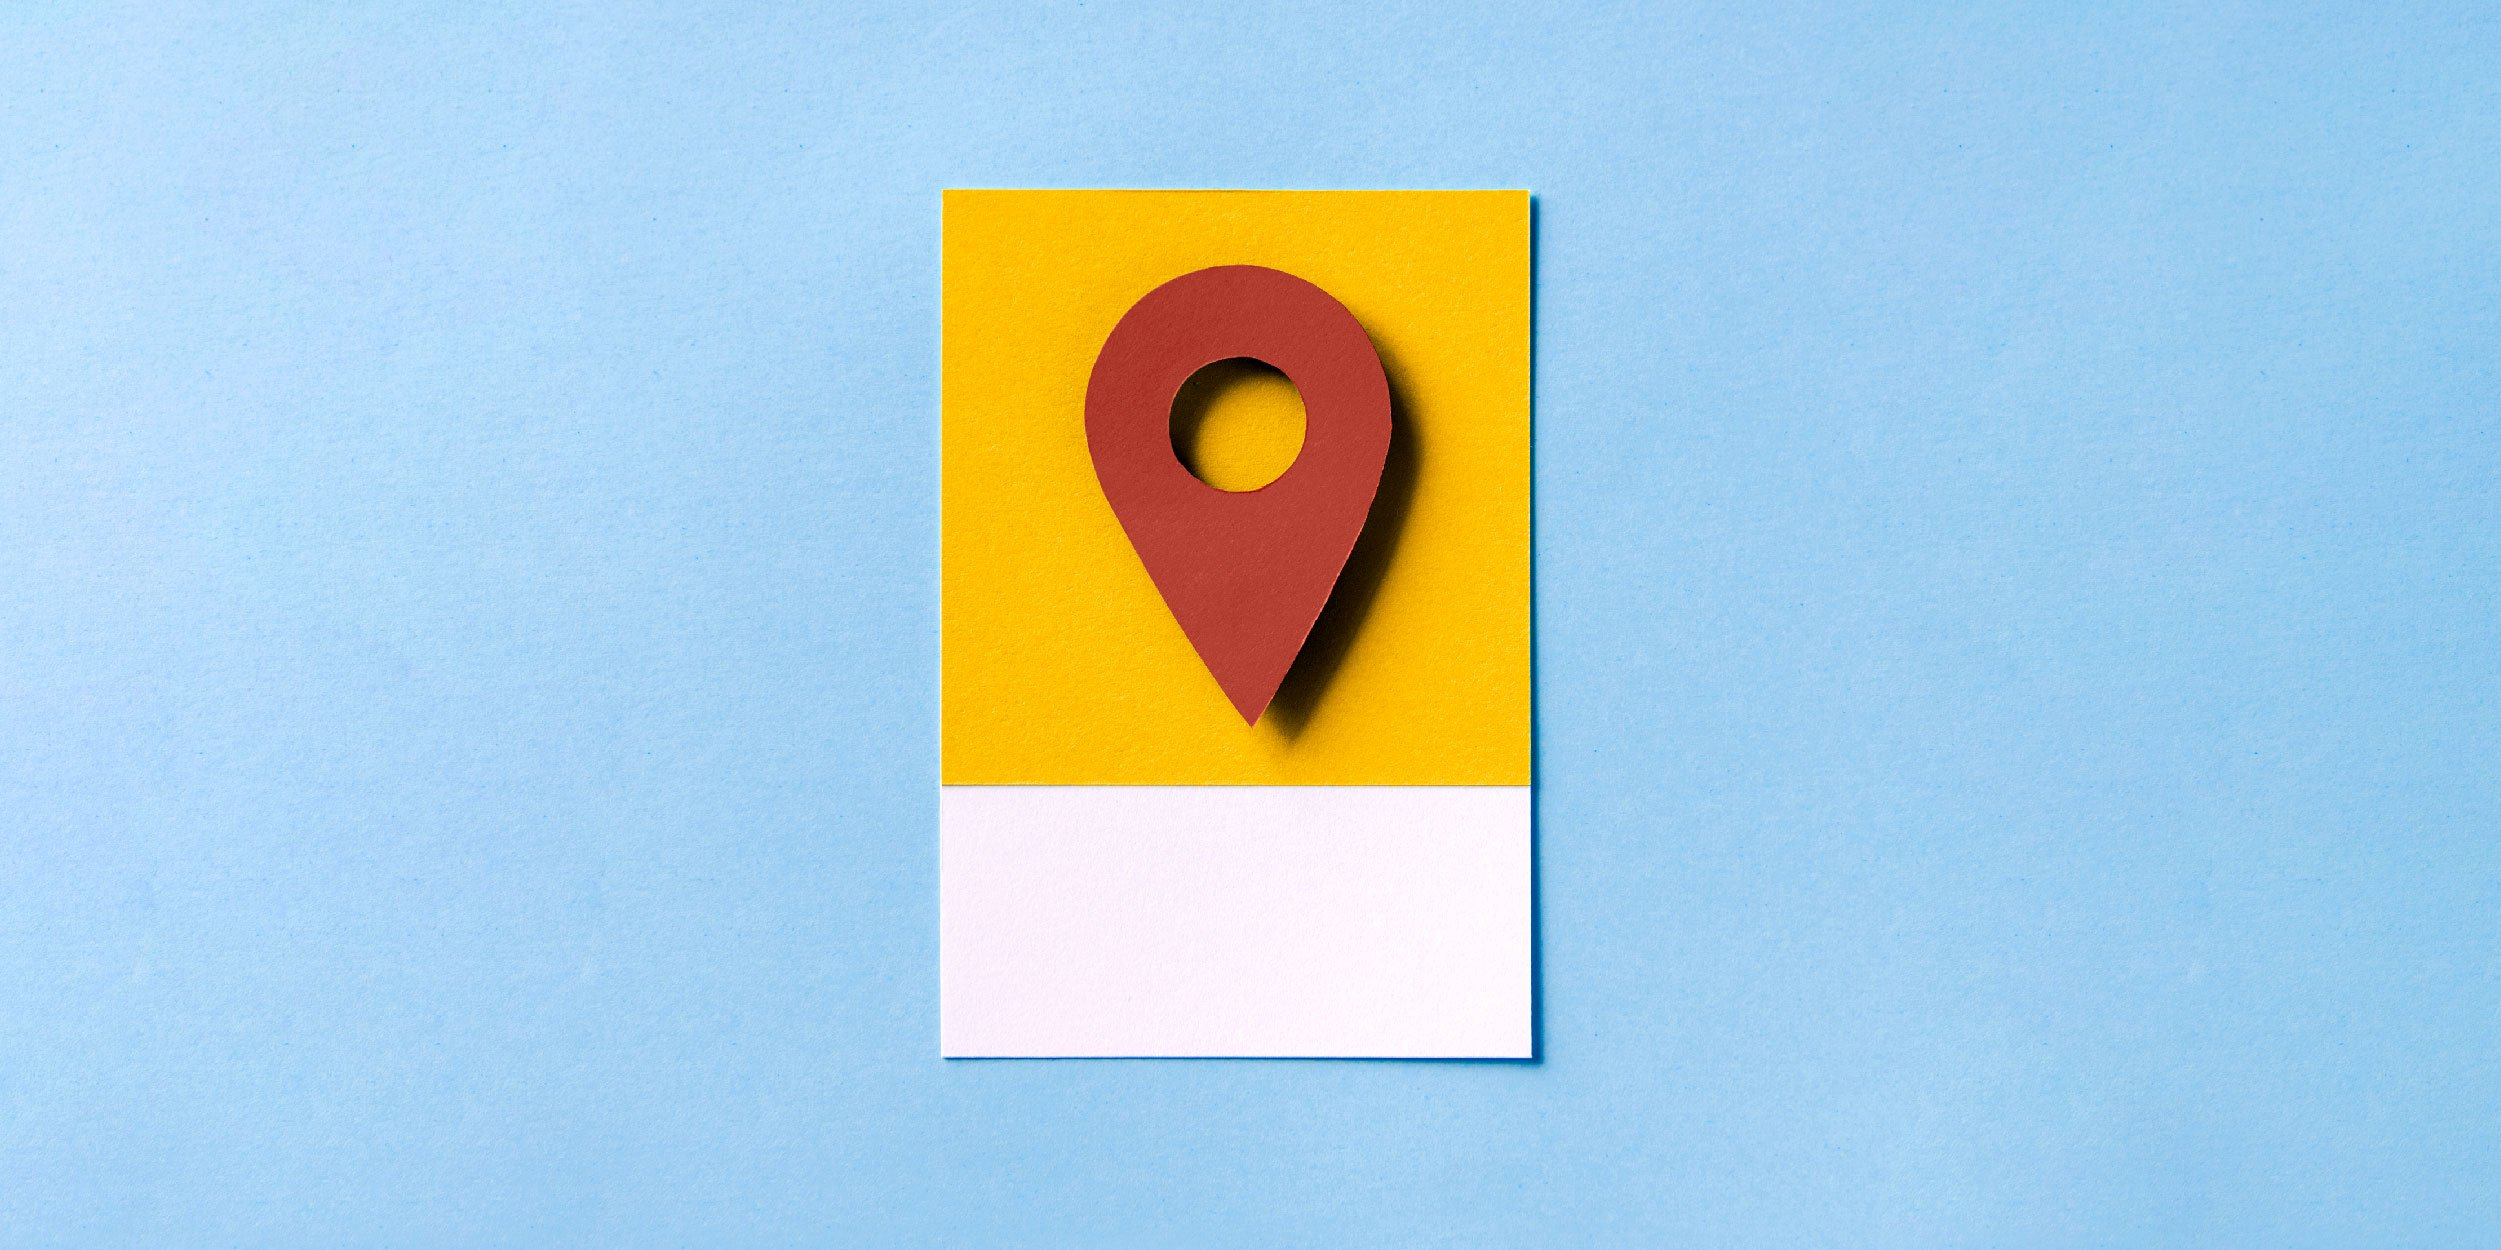 A red pin point symbol on yellow paper.